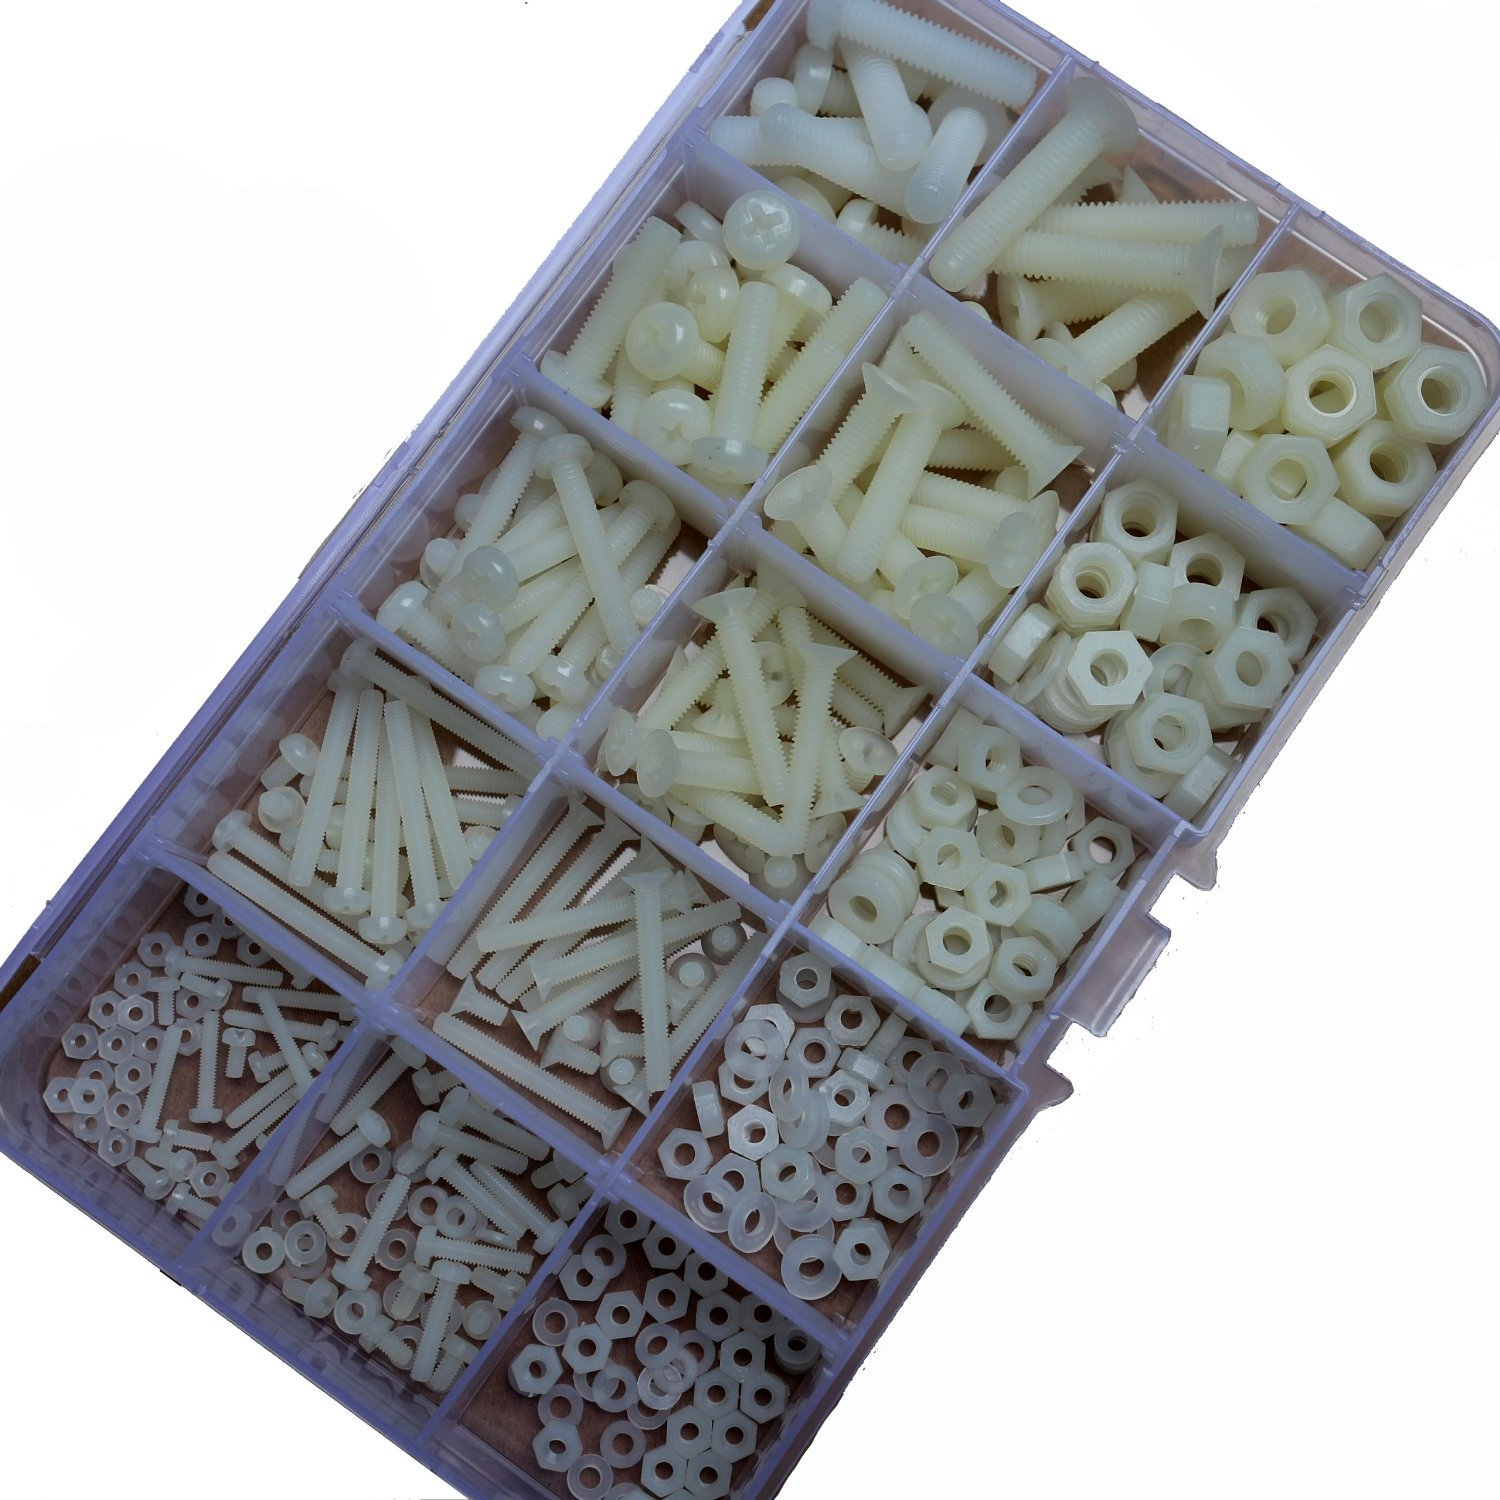 Agile-shop 420Pcs Nylon Plastis Screw Nut Washer Assortment Kit M2 M2.5 M3 M4 M5 M6